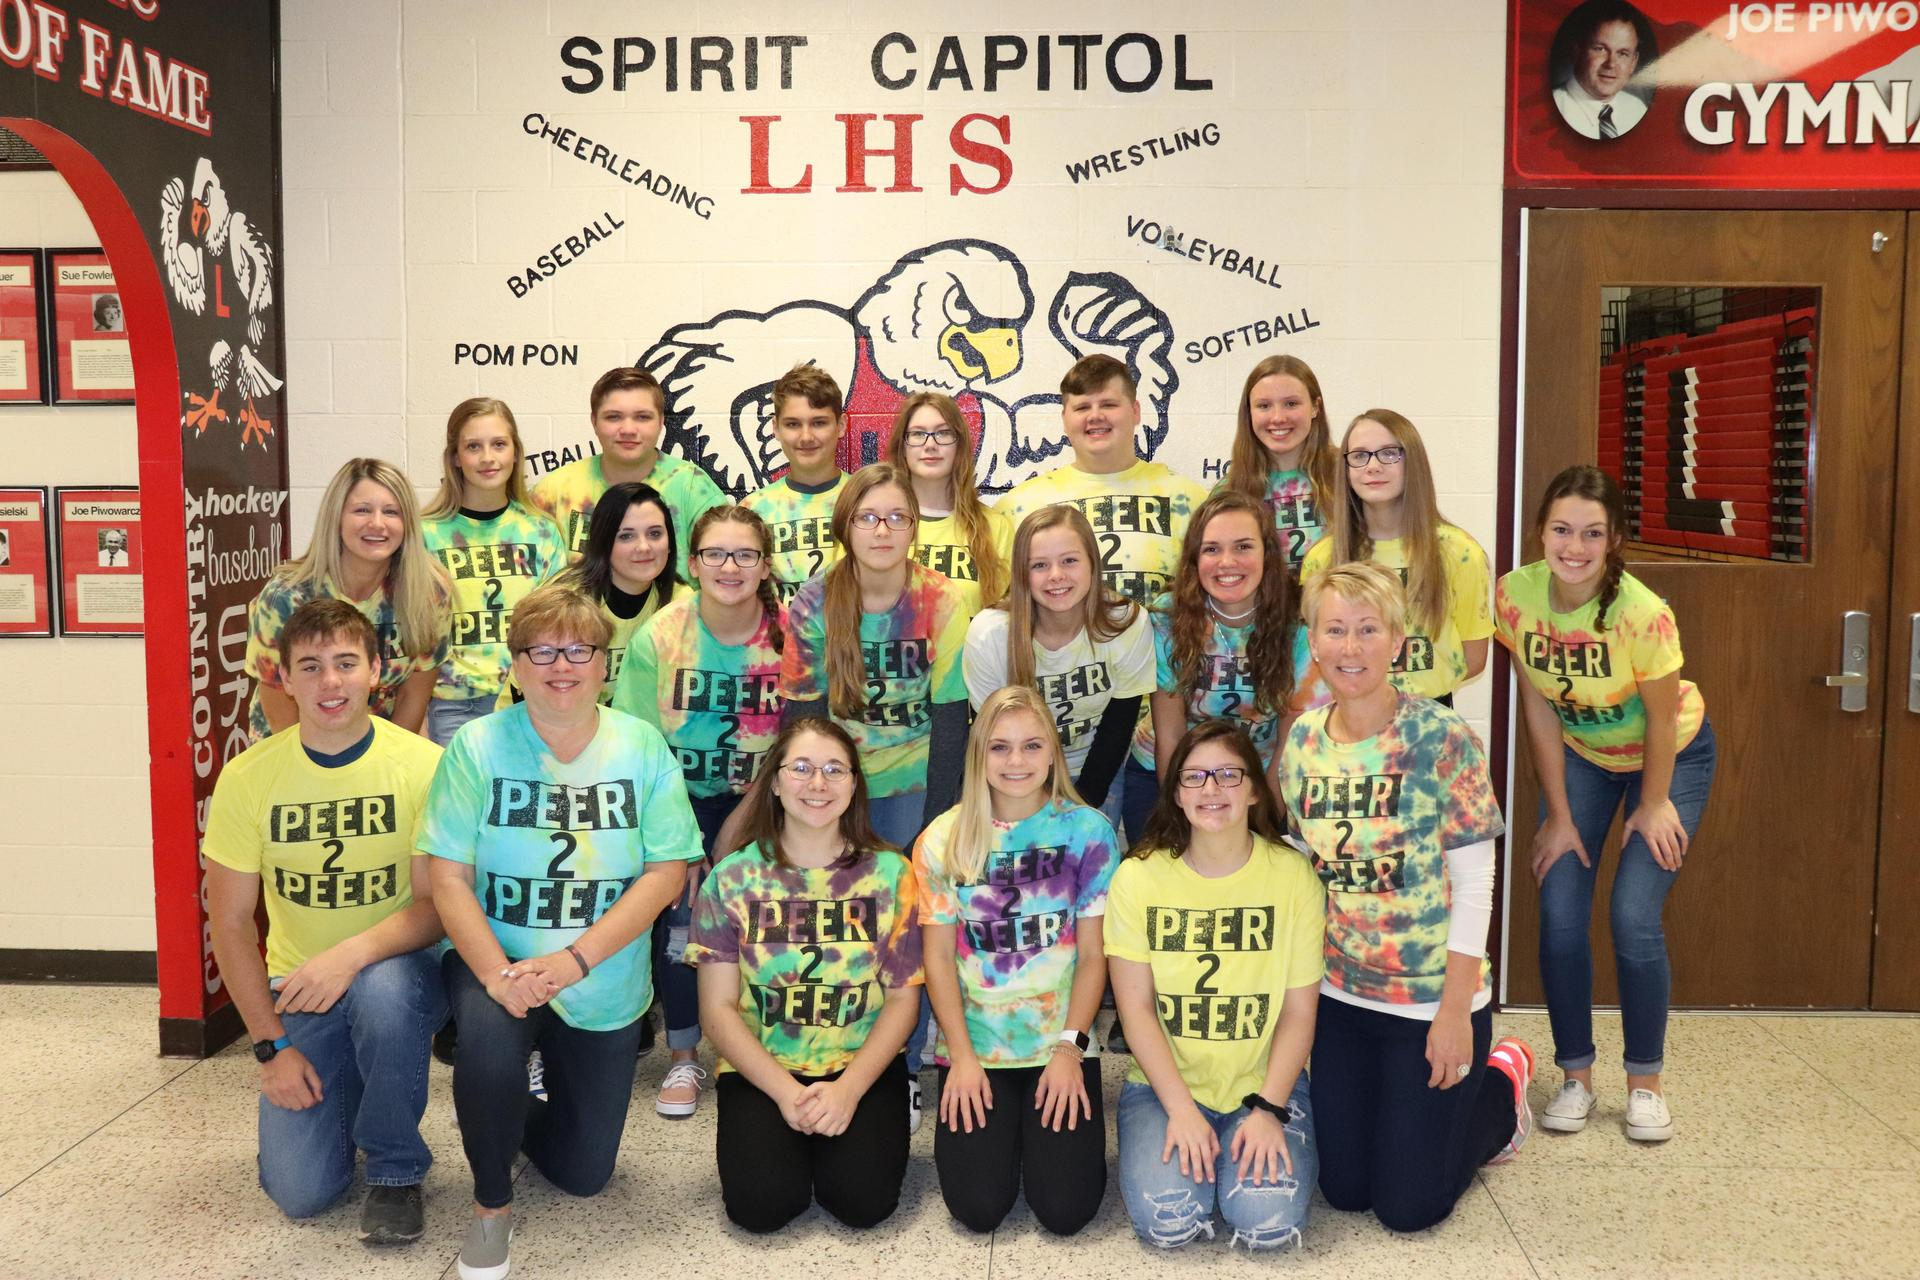 Group of students and teachers wearing tie-dyed t-shirts